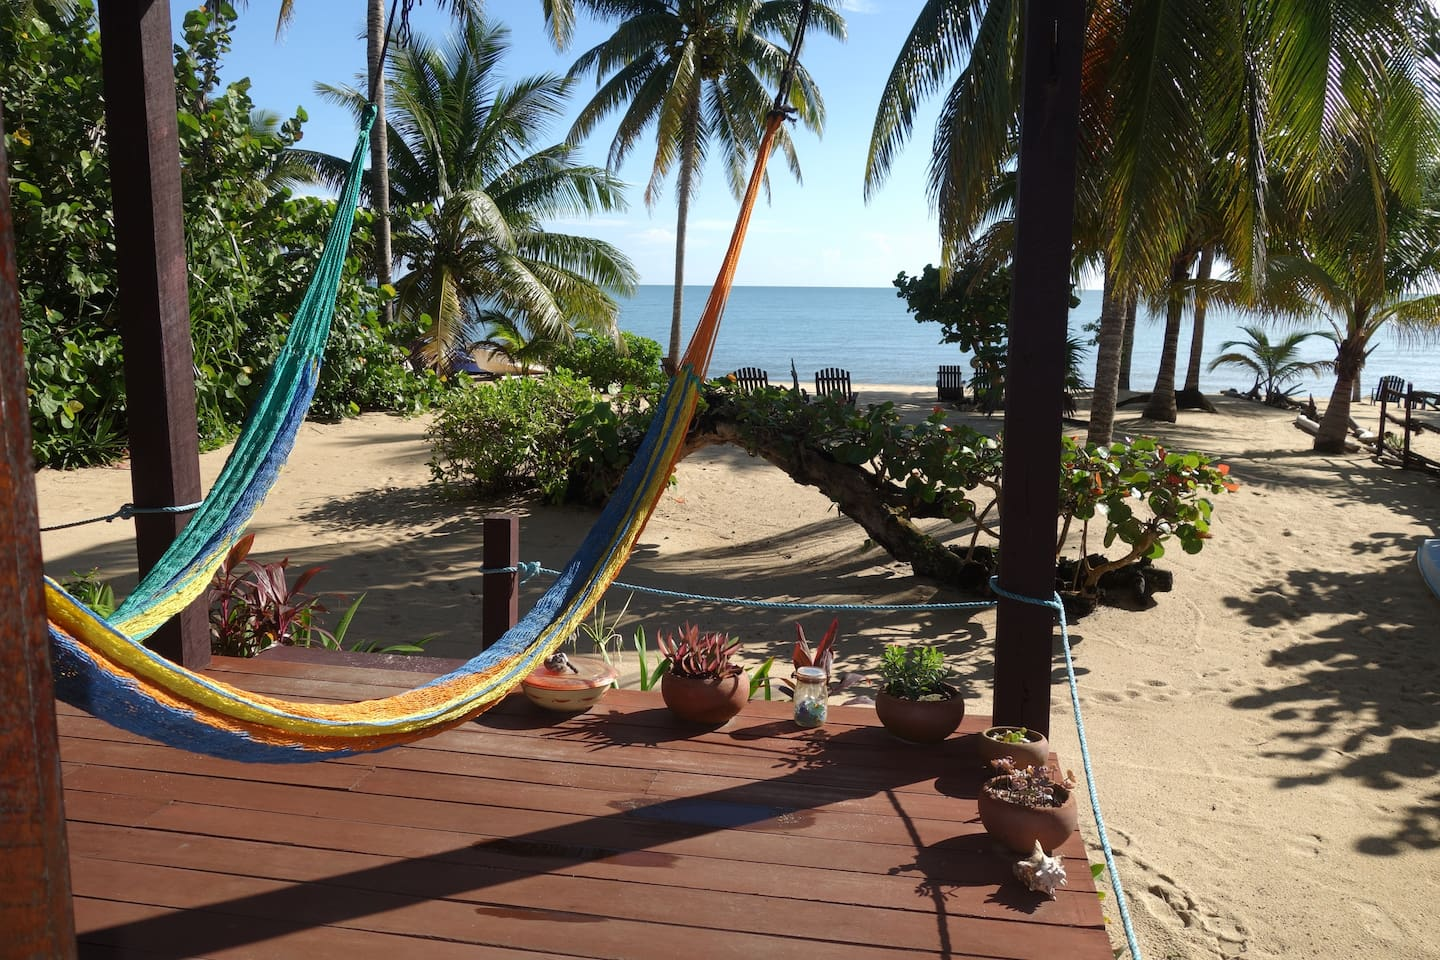 Your hammocks with a beach view